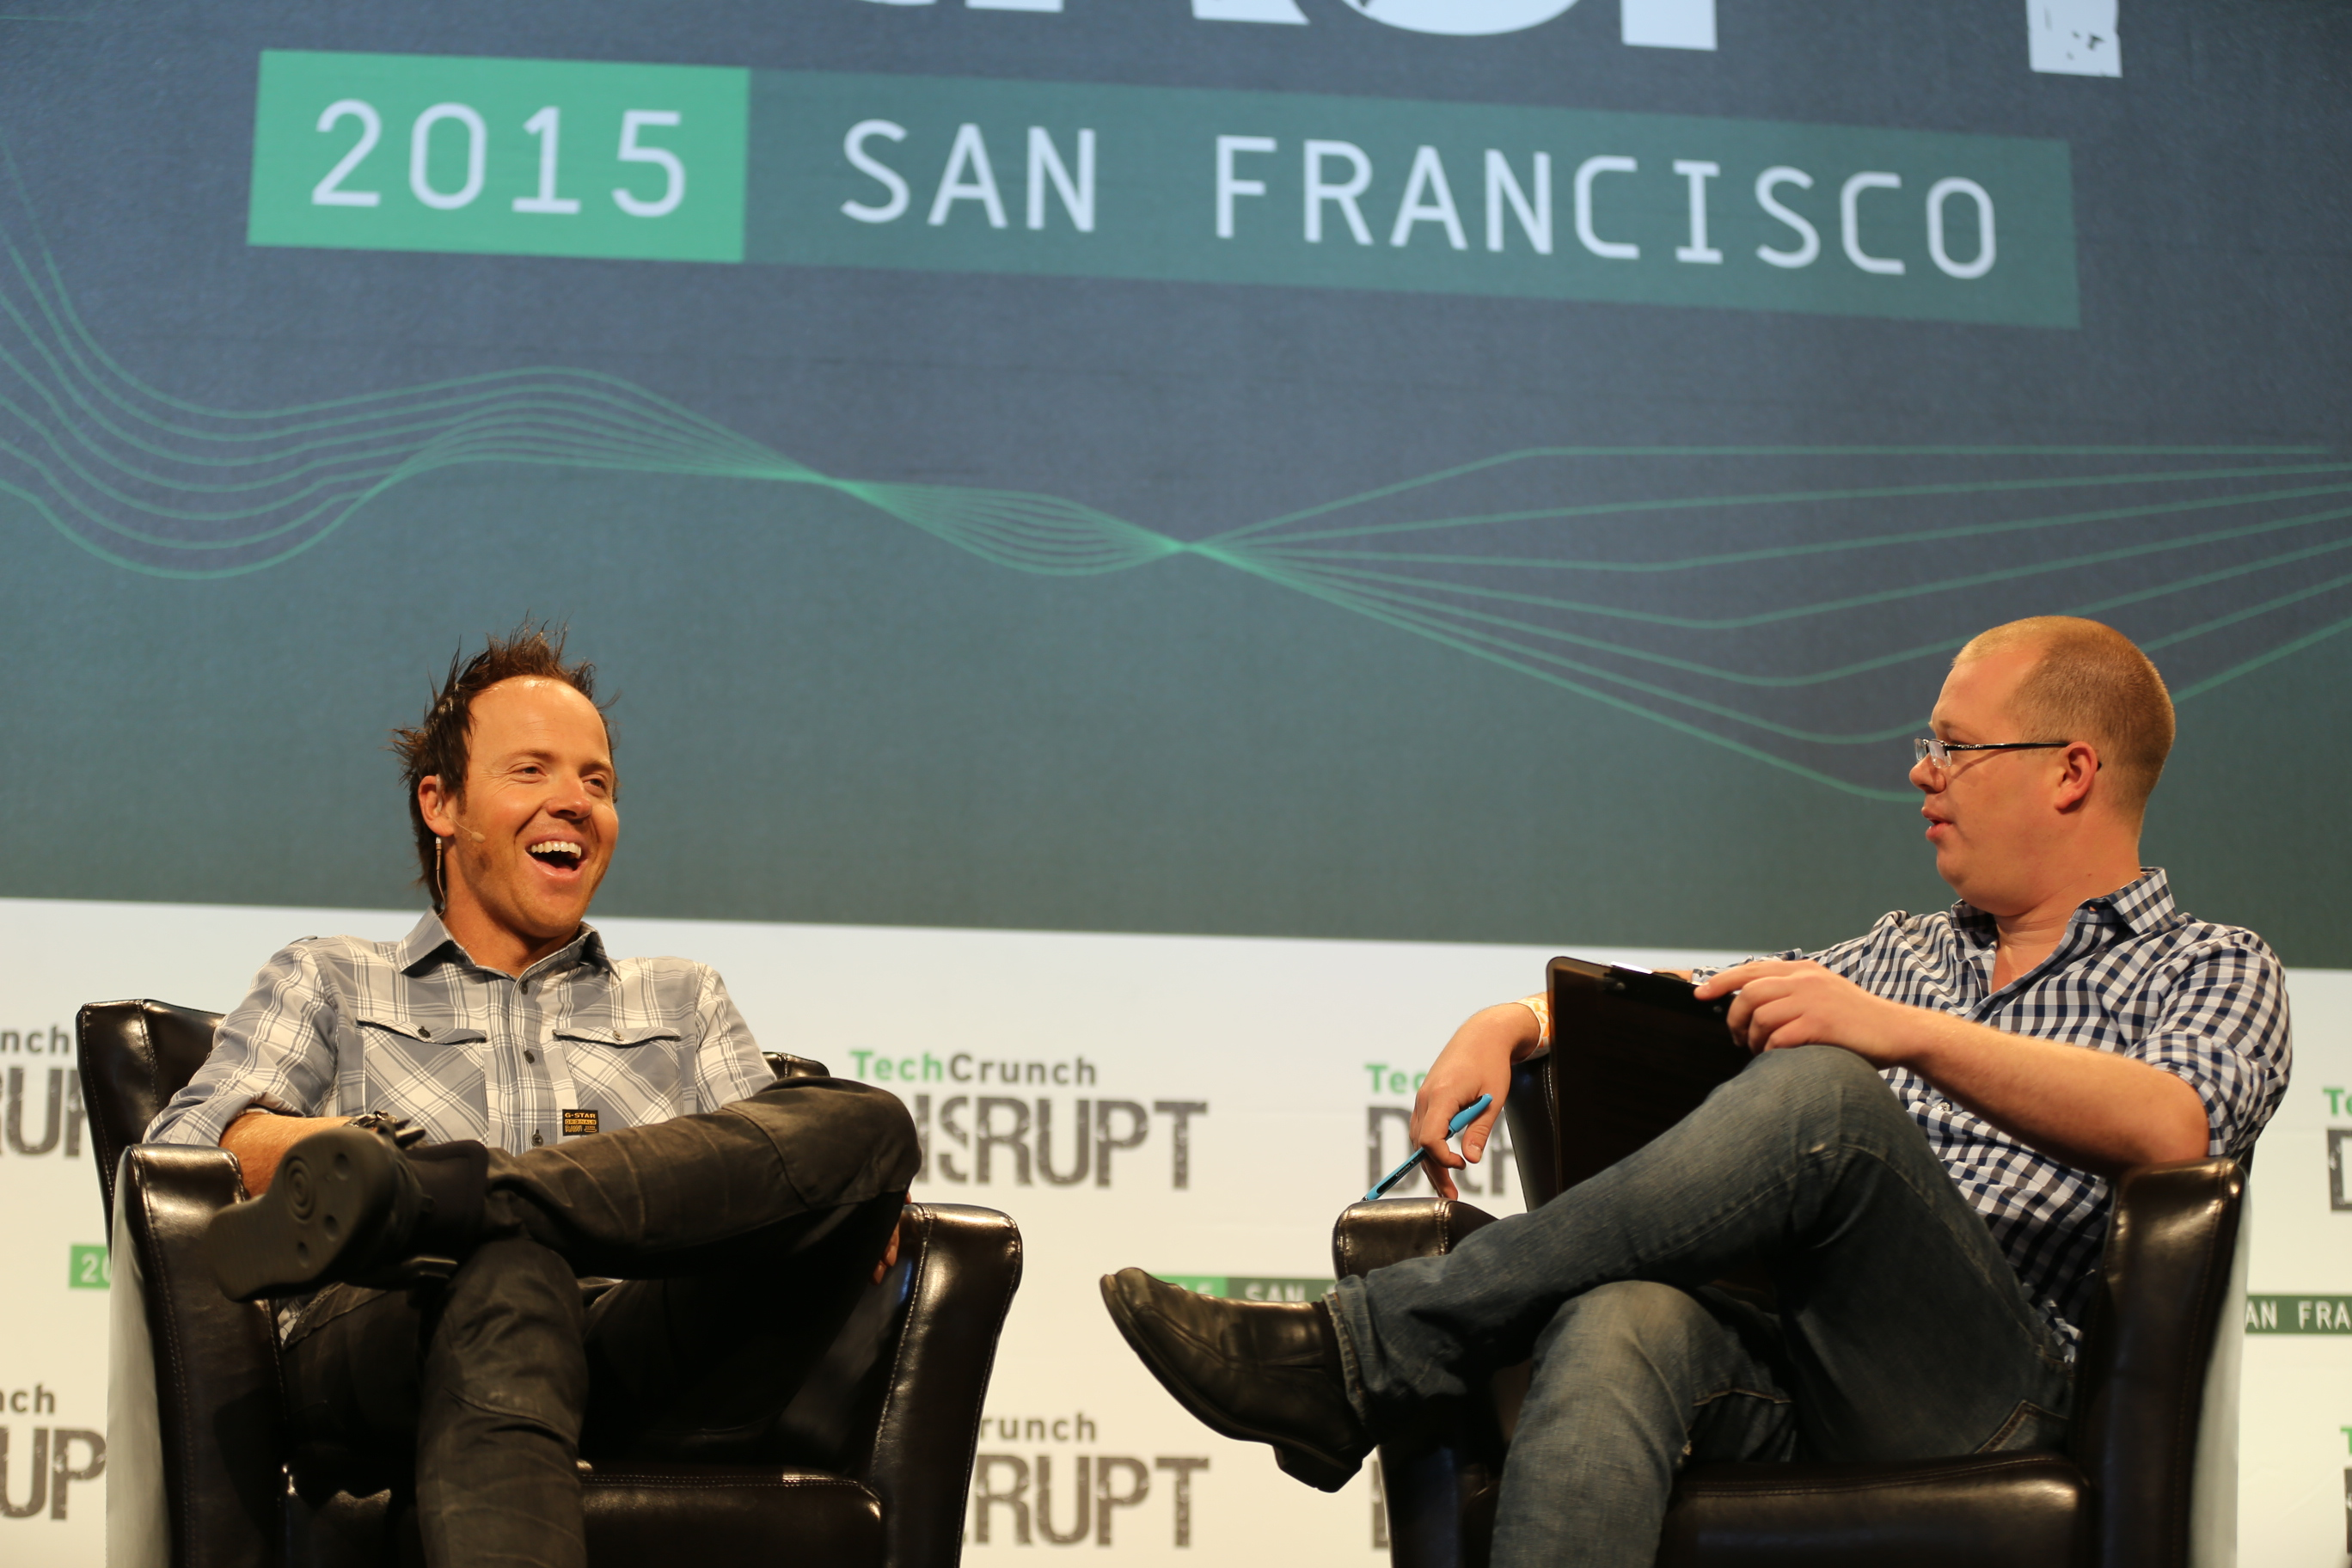 Qualtrics prepares for an IPO two years after SAP acquisition